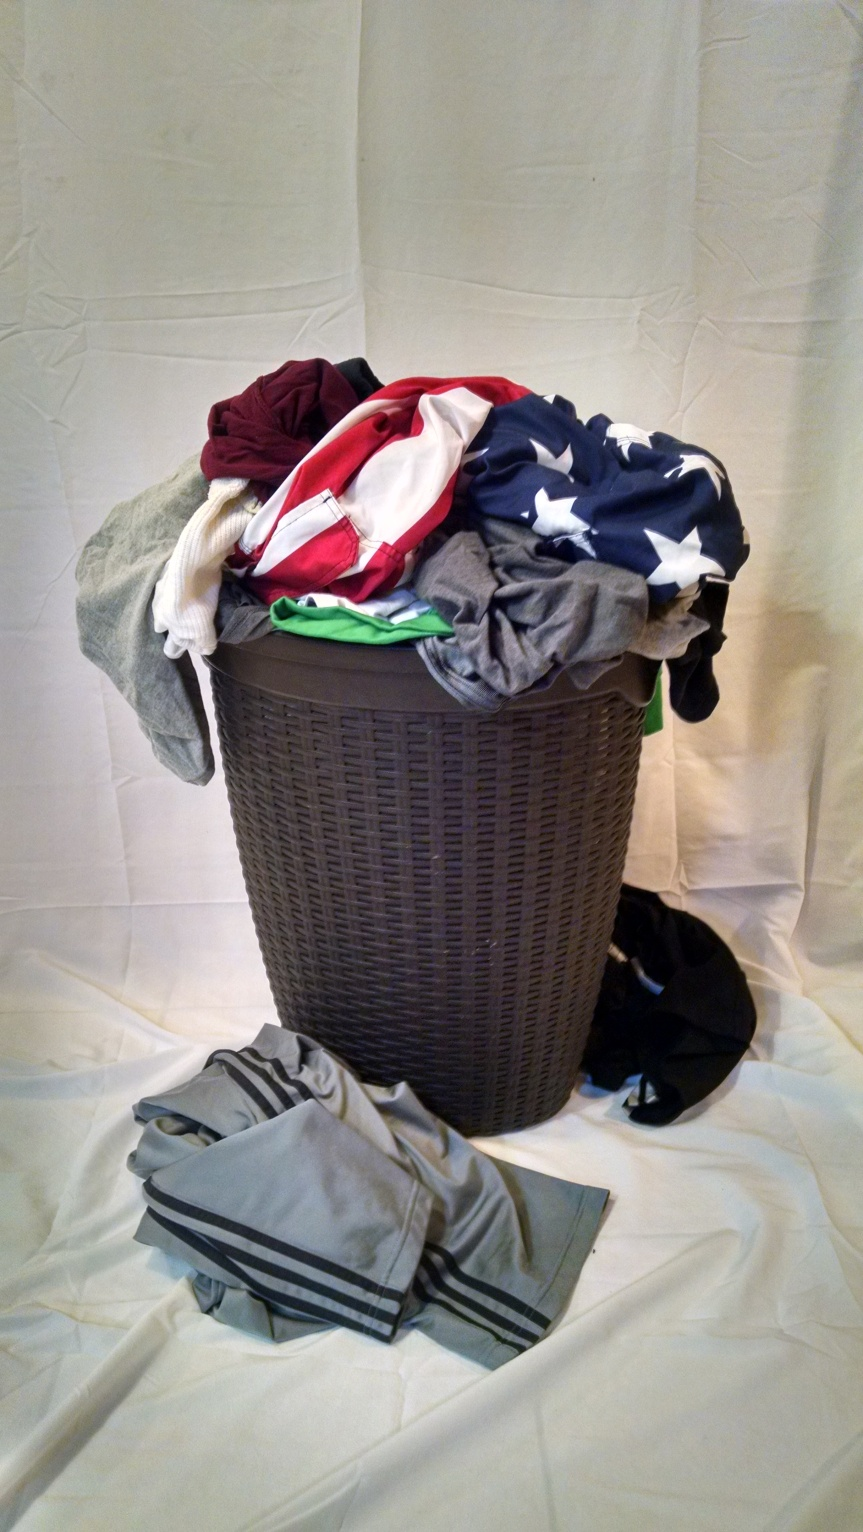 How to do your laundry – Part One